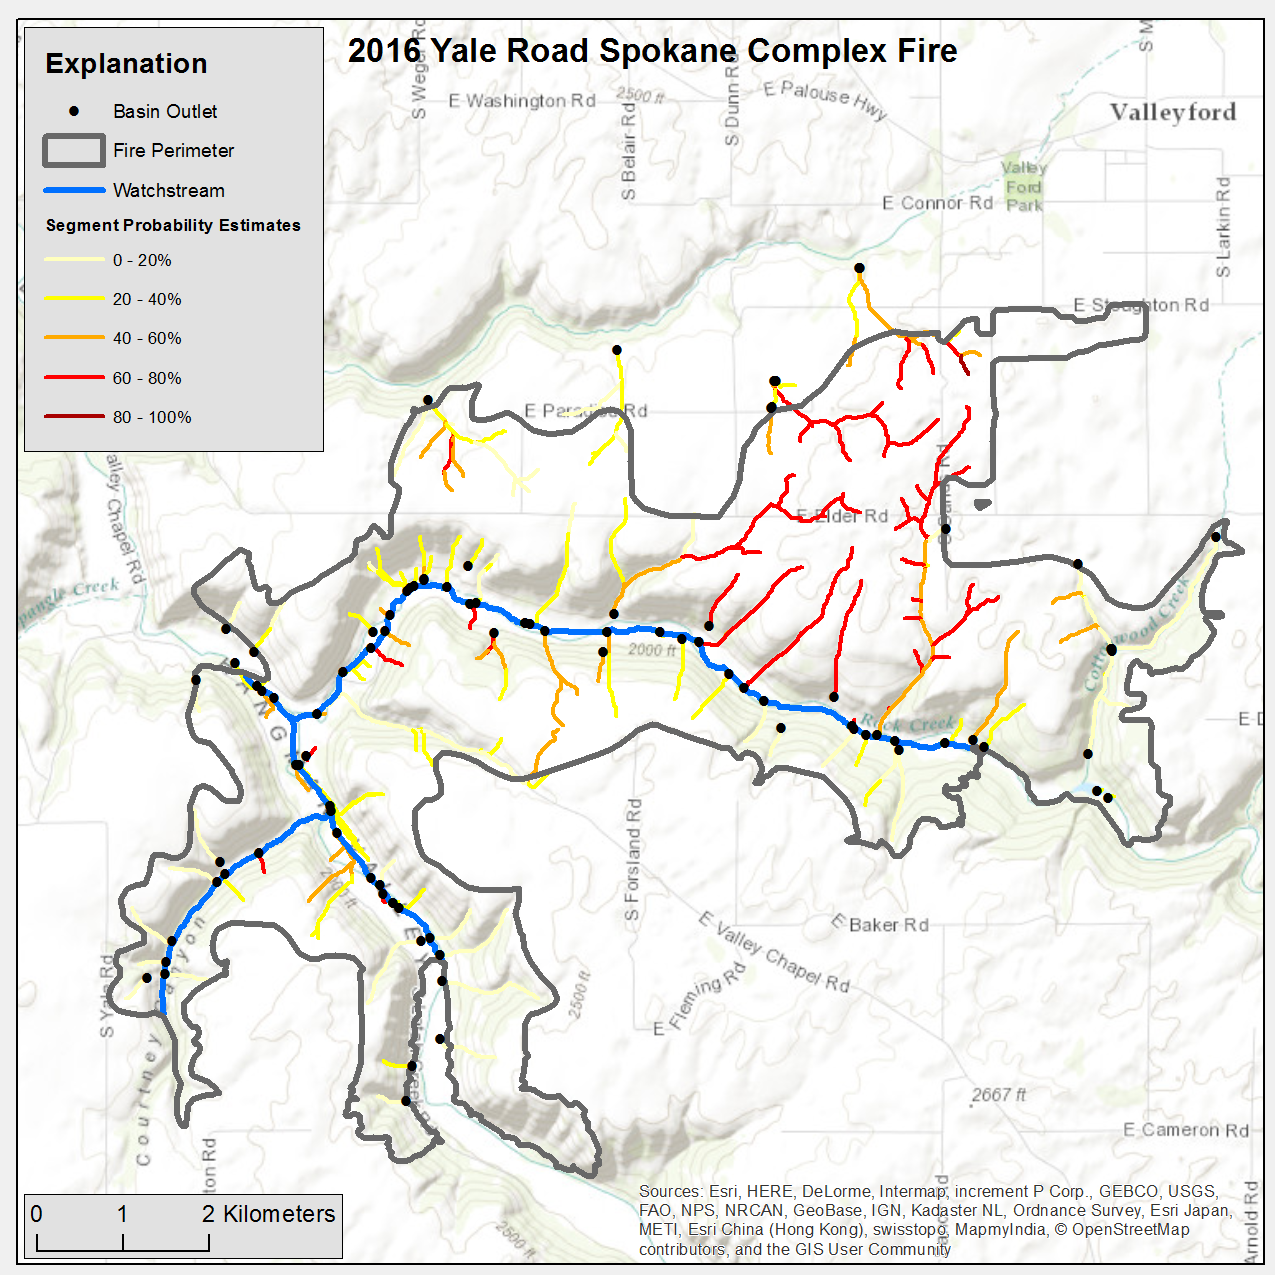 Emergency essment of Post-Fire Debris-Flow Hazards on oakland road map, bremerton road map, hood canal road map, eatonville road map, steamboat springs road map, baraboo road map, mckinney road map, aspen road map, whidbey island road map, mount rainier national park road map, rotterdam road map, norman road map, new haven road map, silverdale road map, roswell road map, alexandria road map, saint john road map, kitsap road map, seaside road map, bangor base road map,